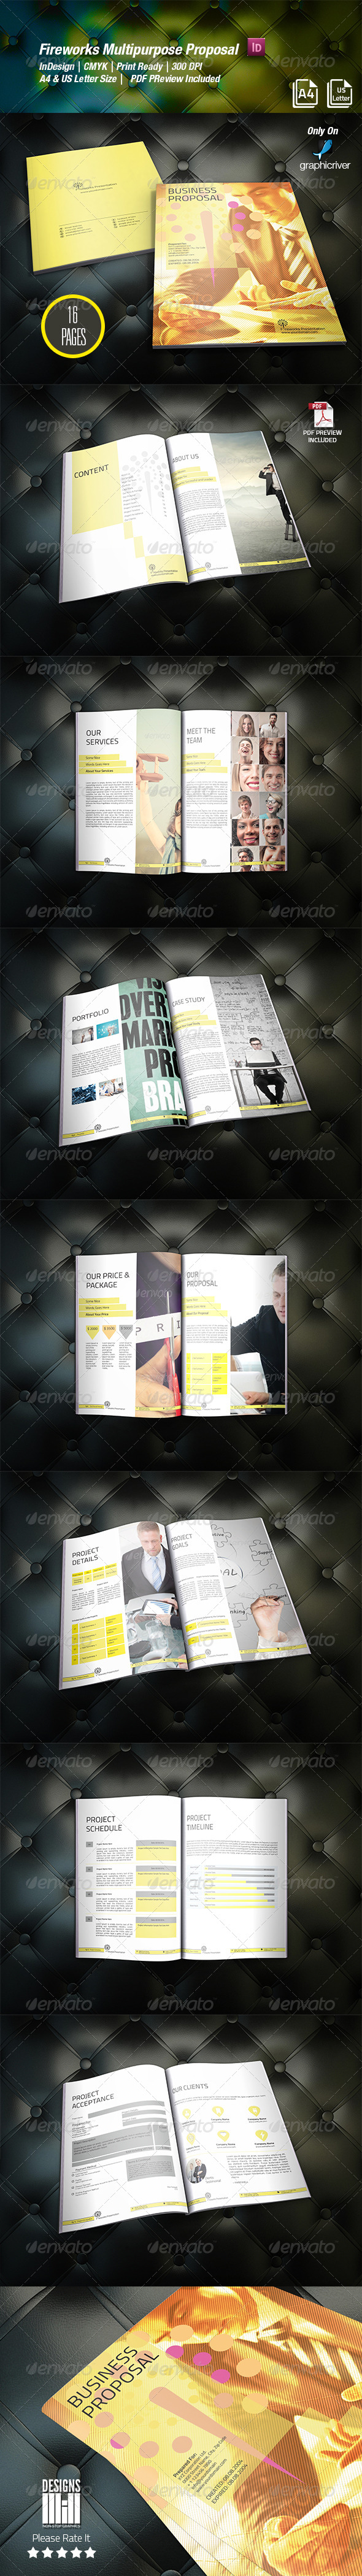 Fireworks Multipurpose Proposal  - Proposals & Invoices Stationery